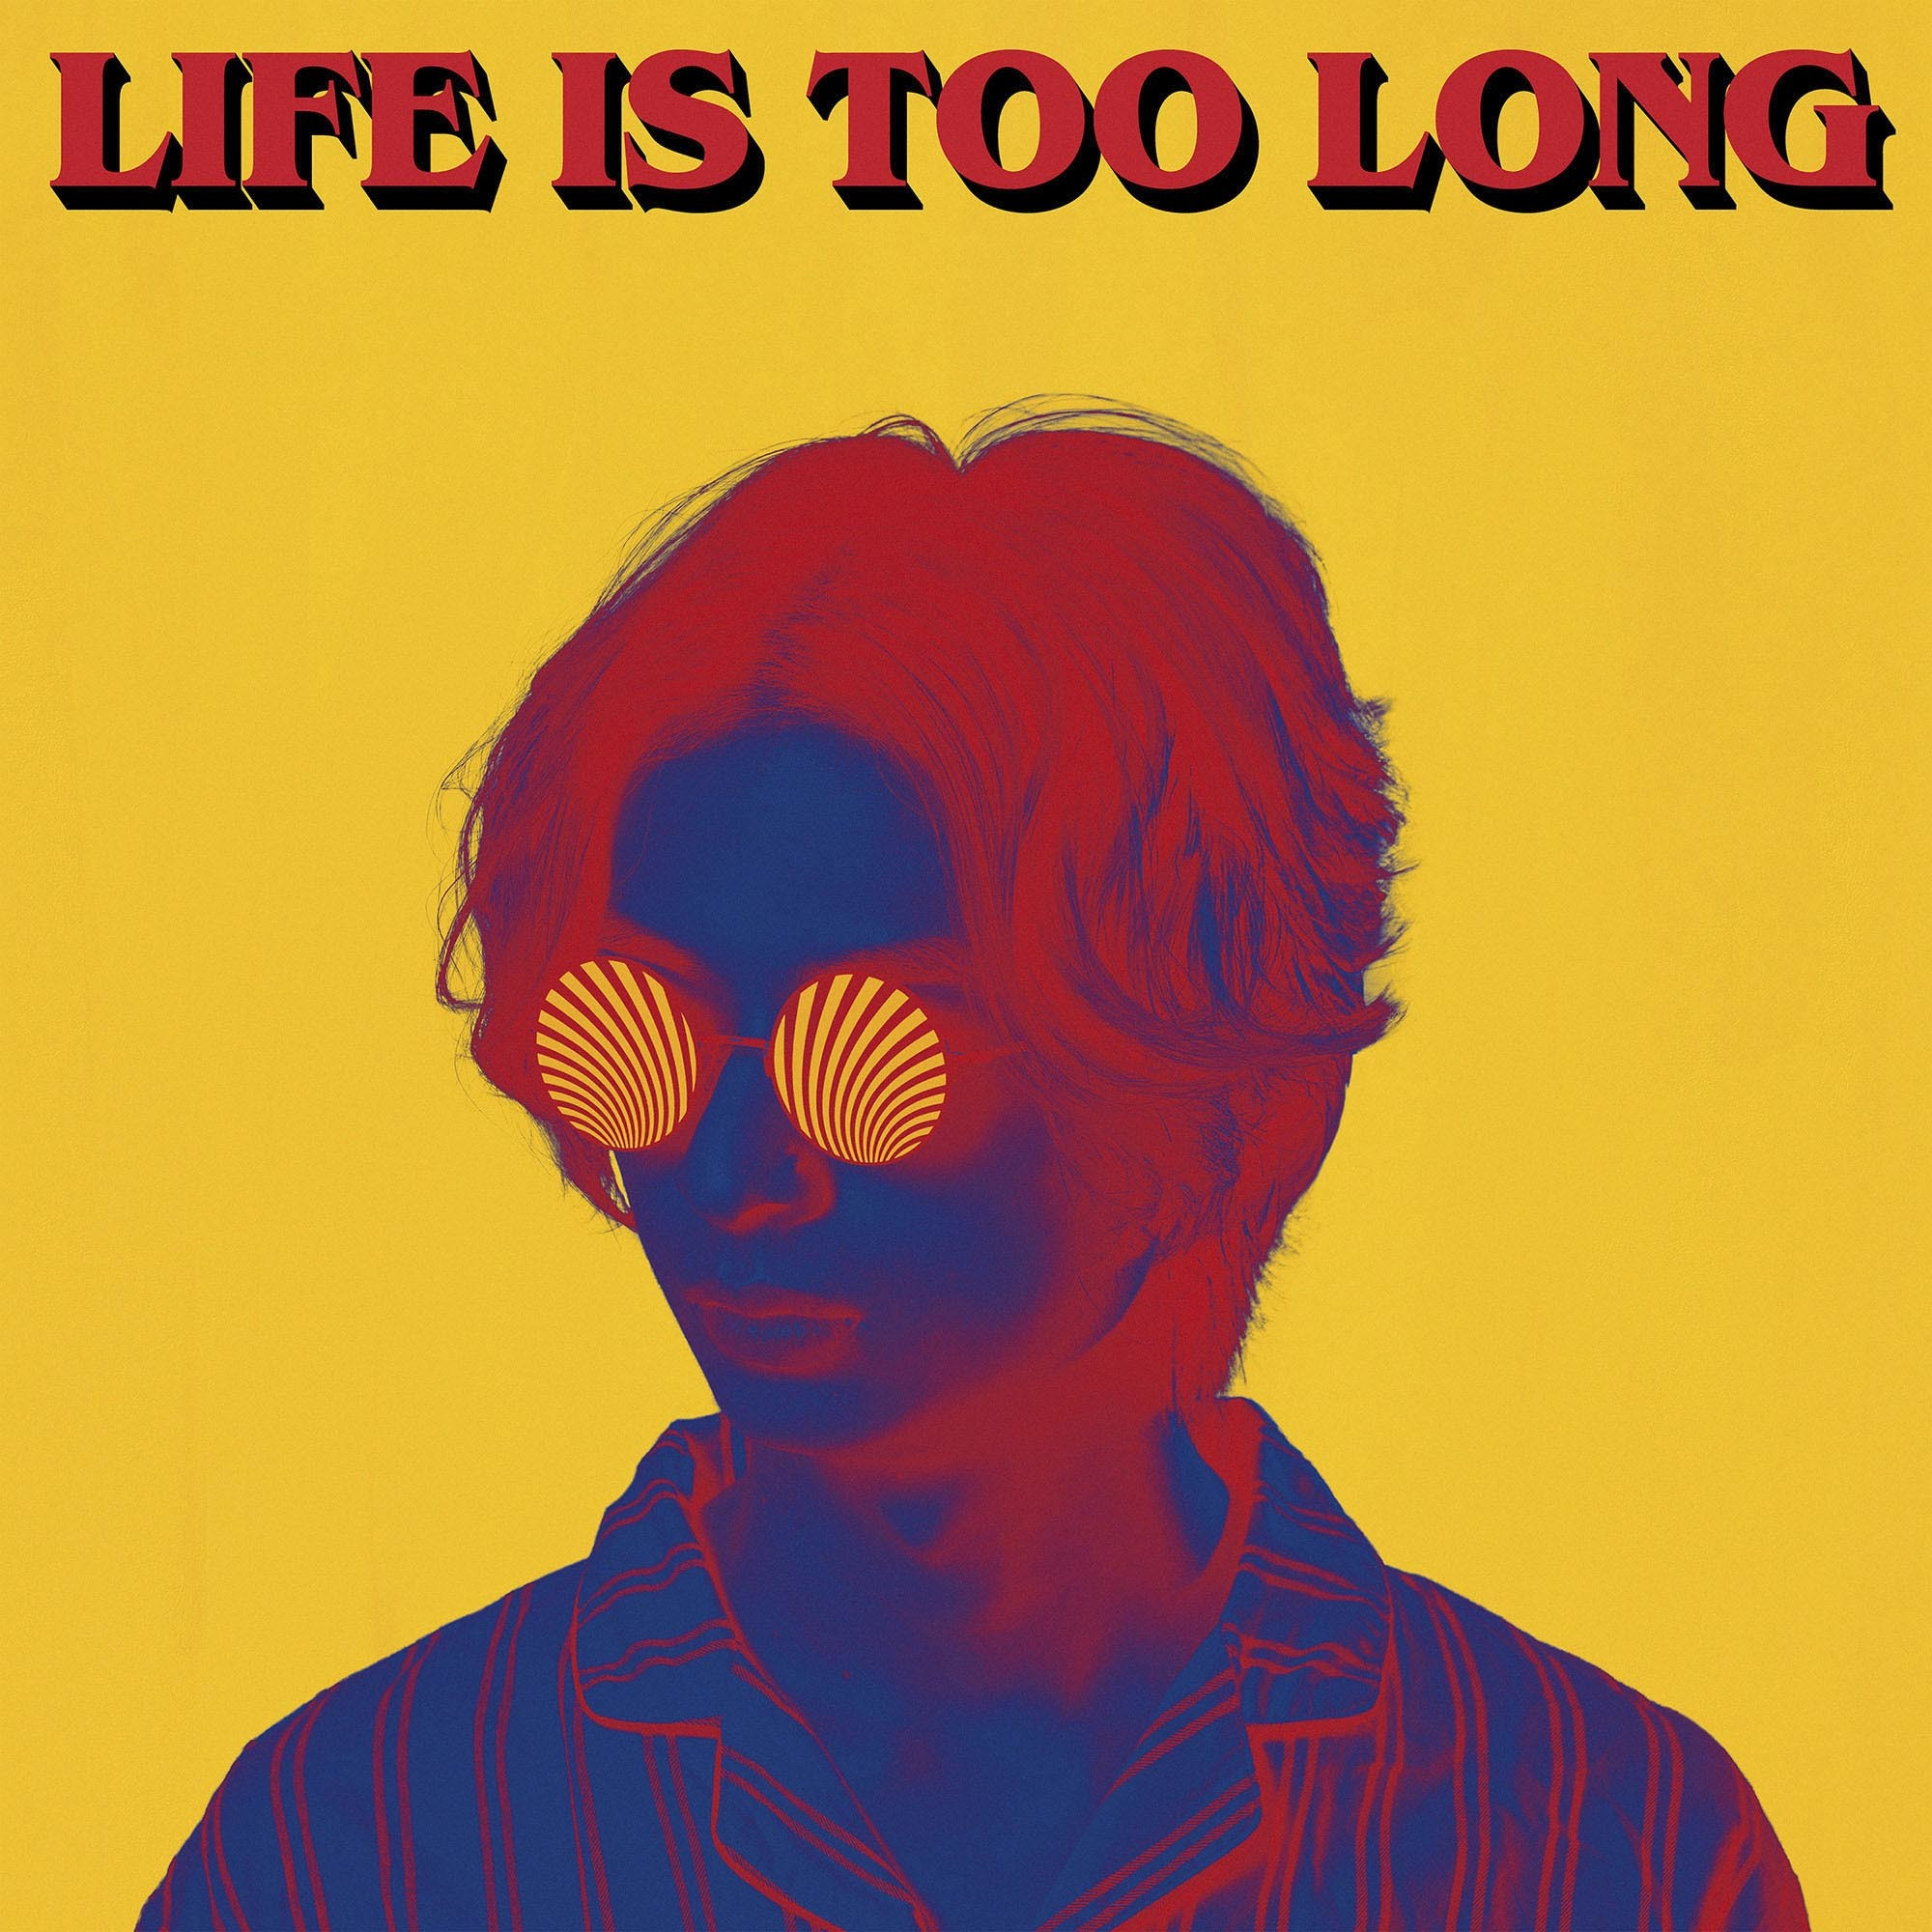 『LIFE IS TOO LONG』